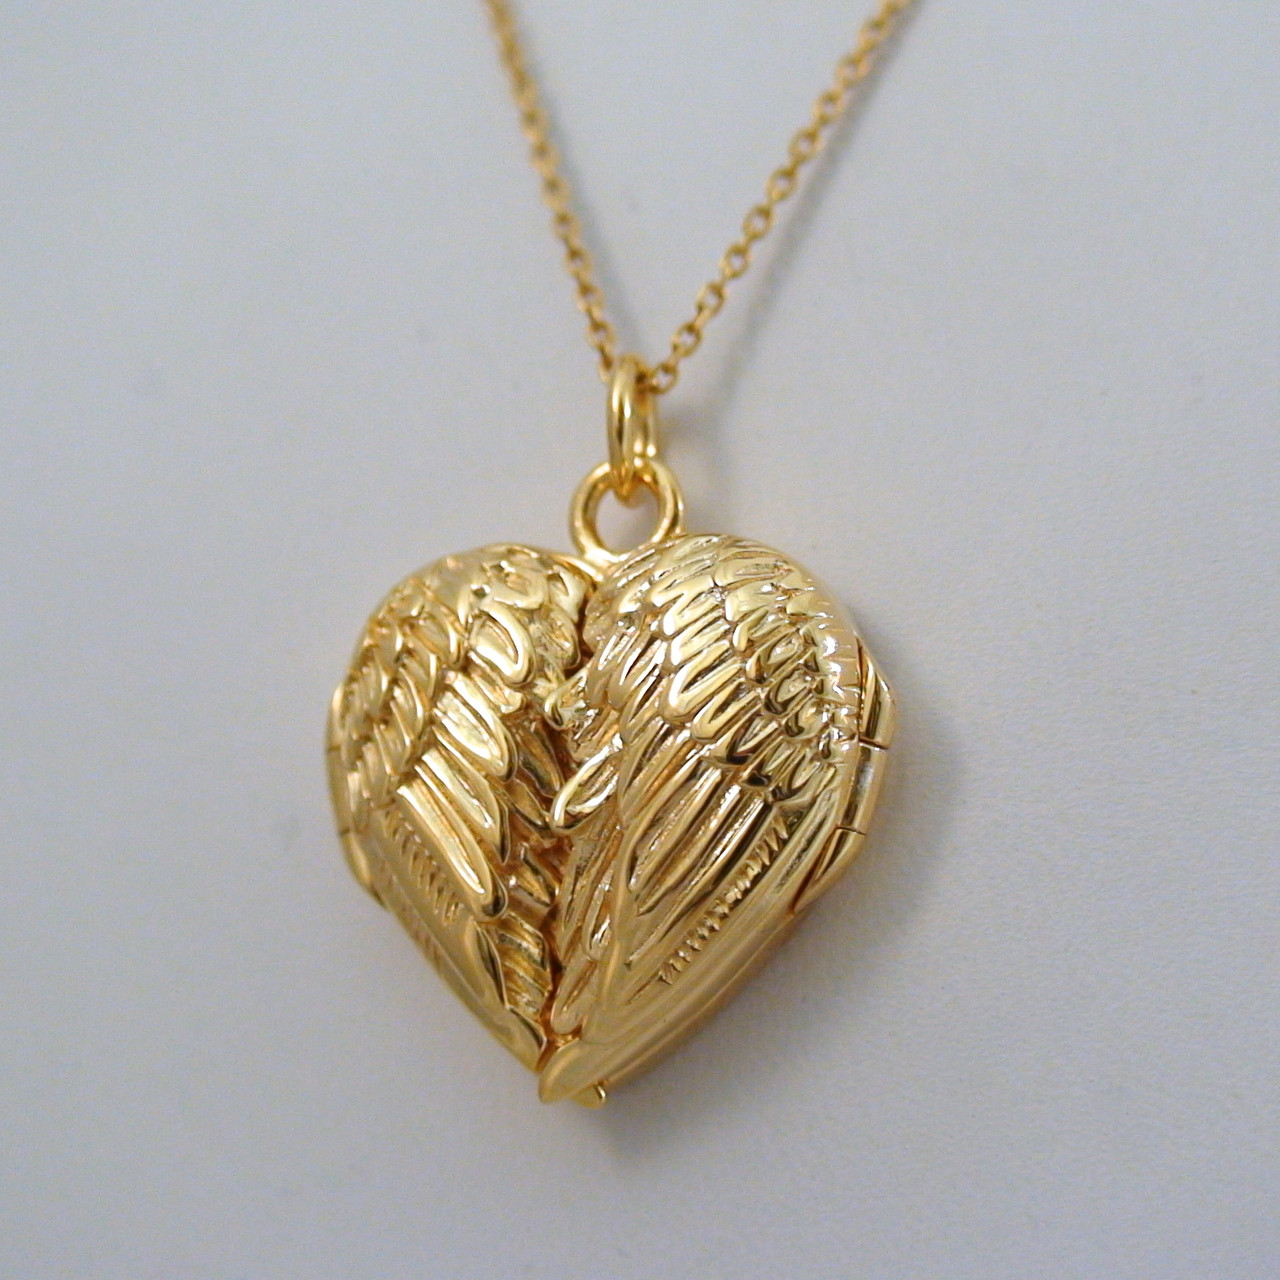 Angel wing locket necklace 14k gold plate sterling silver gold angel wing locket necklace in sterling silver 14k gold plate aloadofball Images